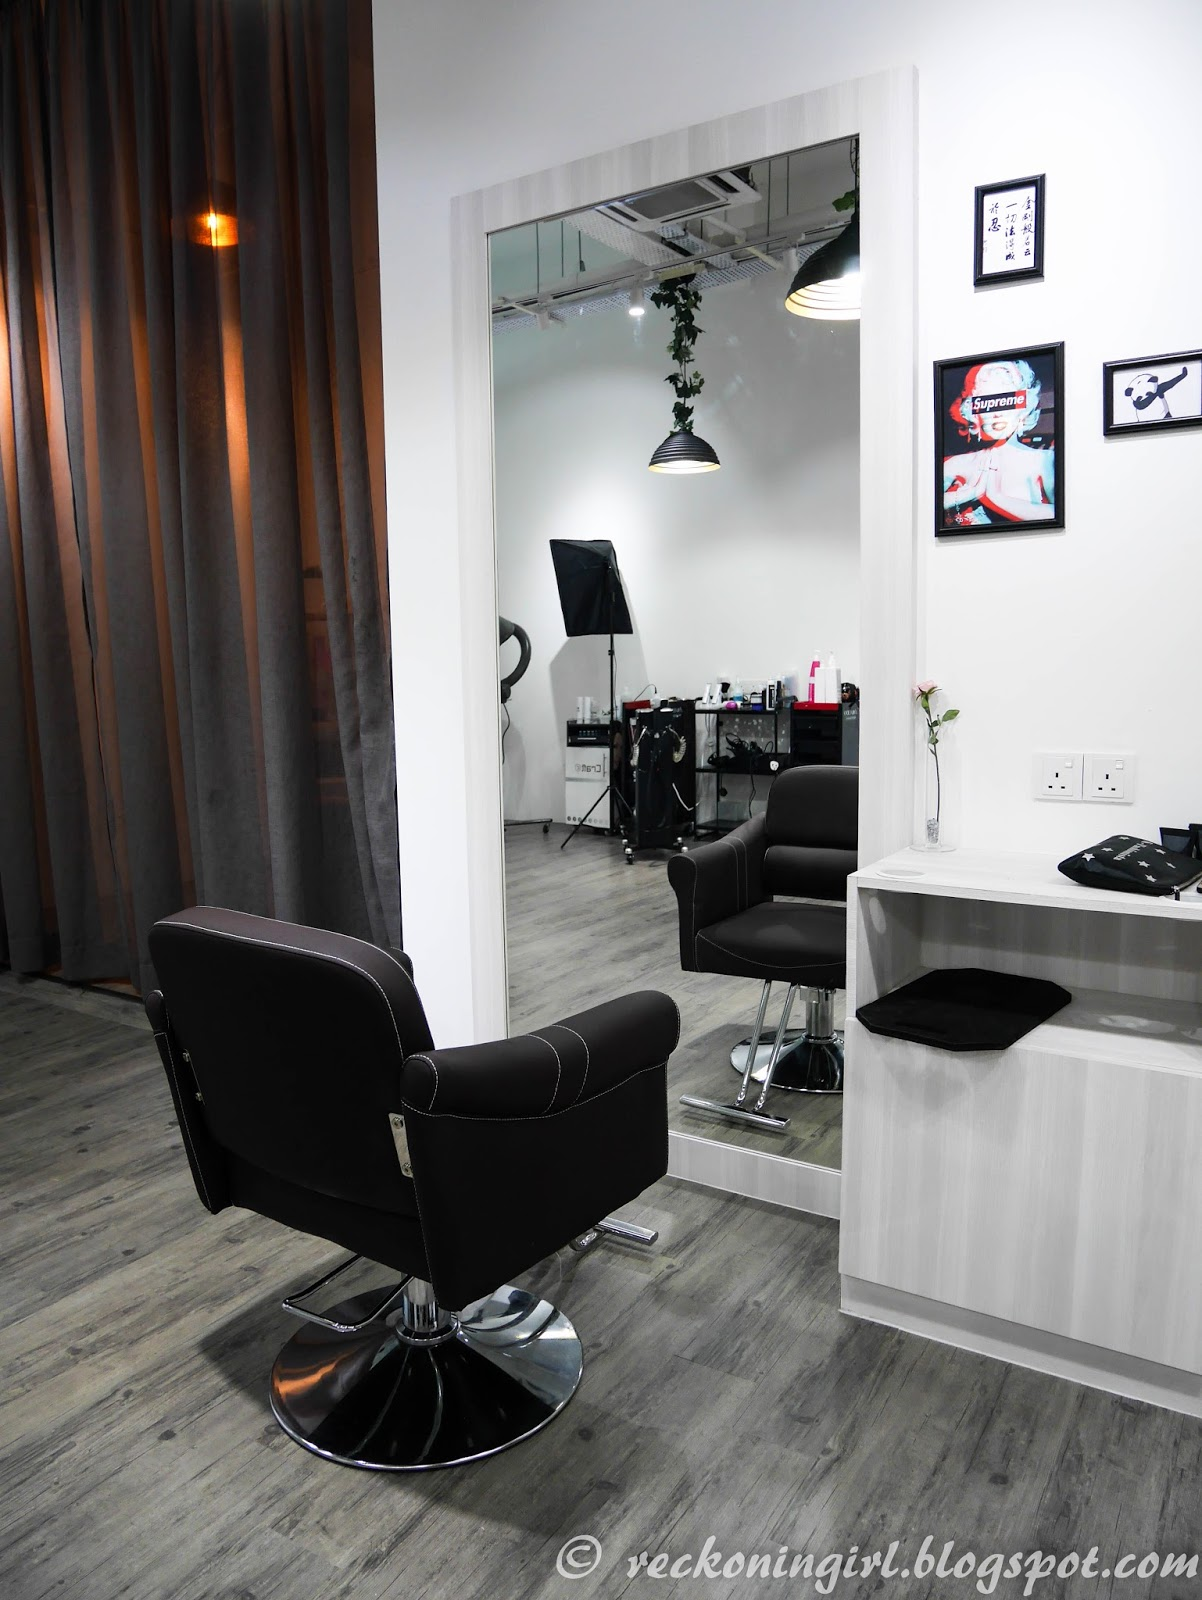 90 39 s hairstyle salon the place to go for instaworthy hair for 3 little birds salon